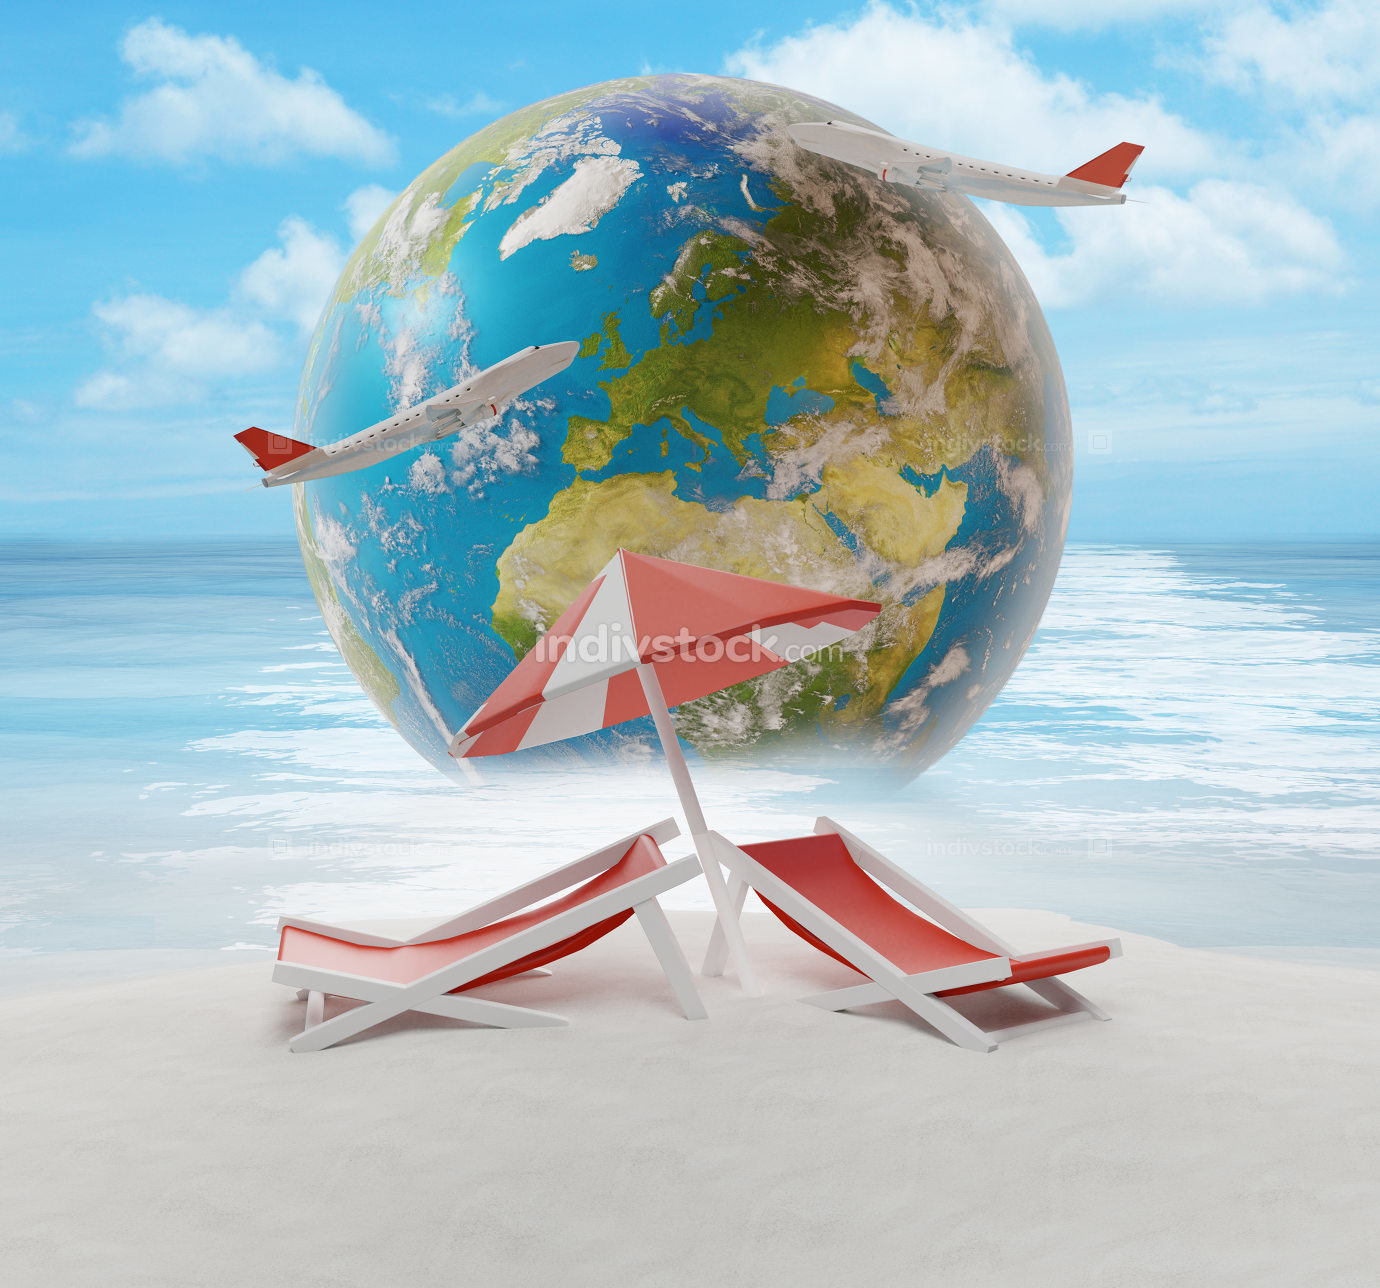 lounge and umbrella on sand beach island with world globe 3d-ill